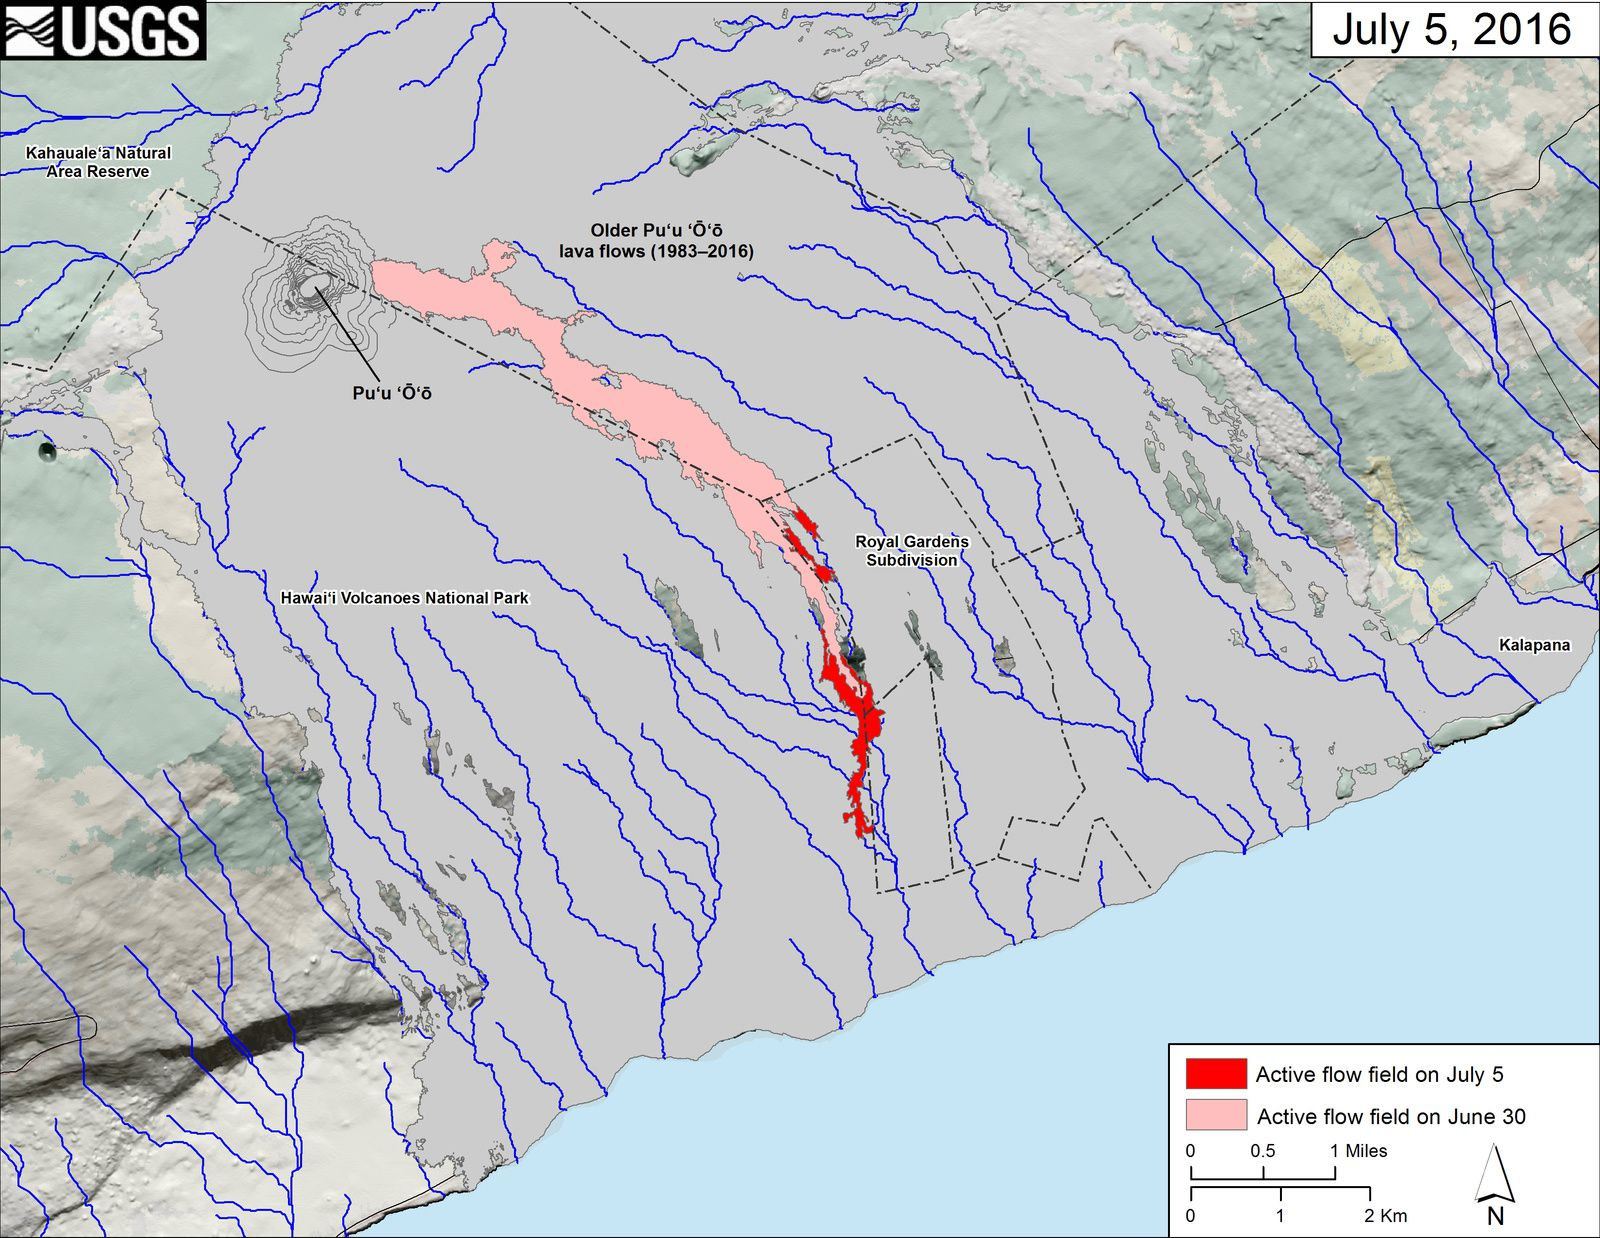 Pu'u O'o - Advanceof the 61g lava flow on the costal plain on 05.06.2016- HVO map